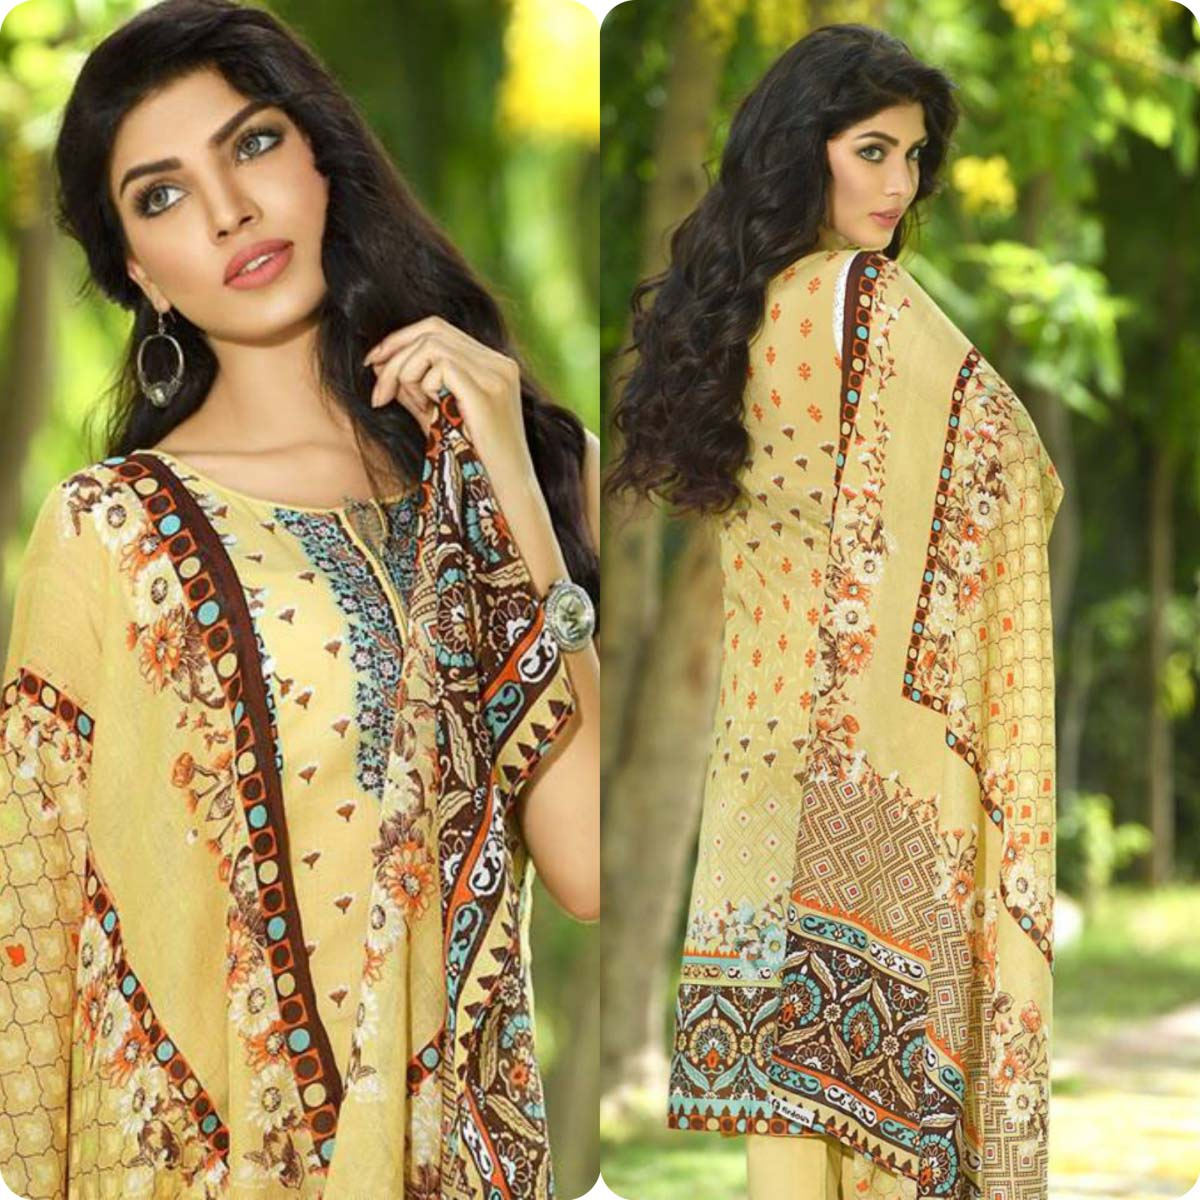 Firdous Korean Lawn Festive Eid Dresse Collection 2016-2017 look Book (19)